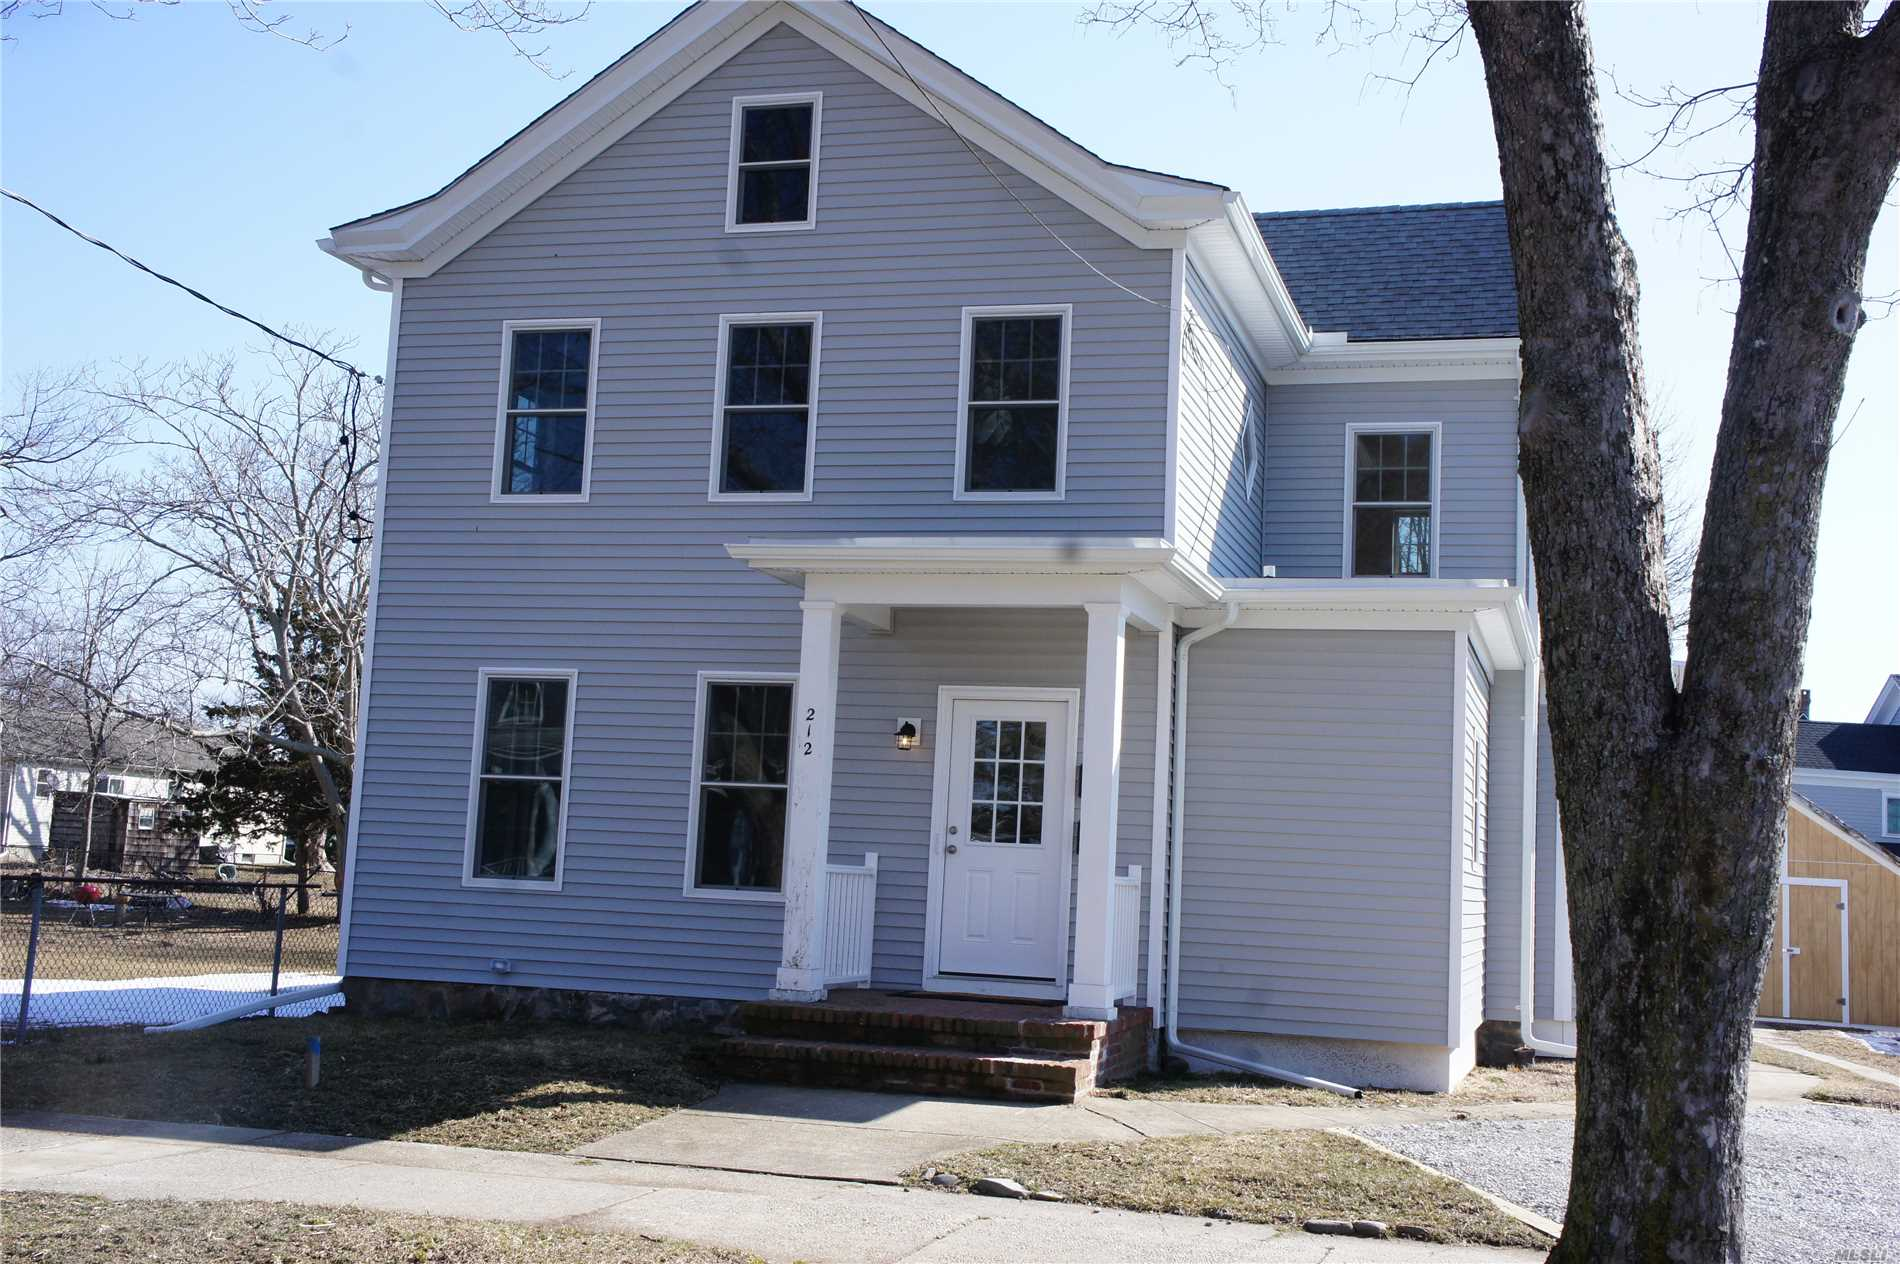 Fully Renovated 2 Family Home in Heart of Greenport Village. Close to all.